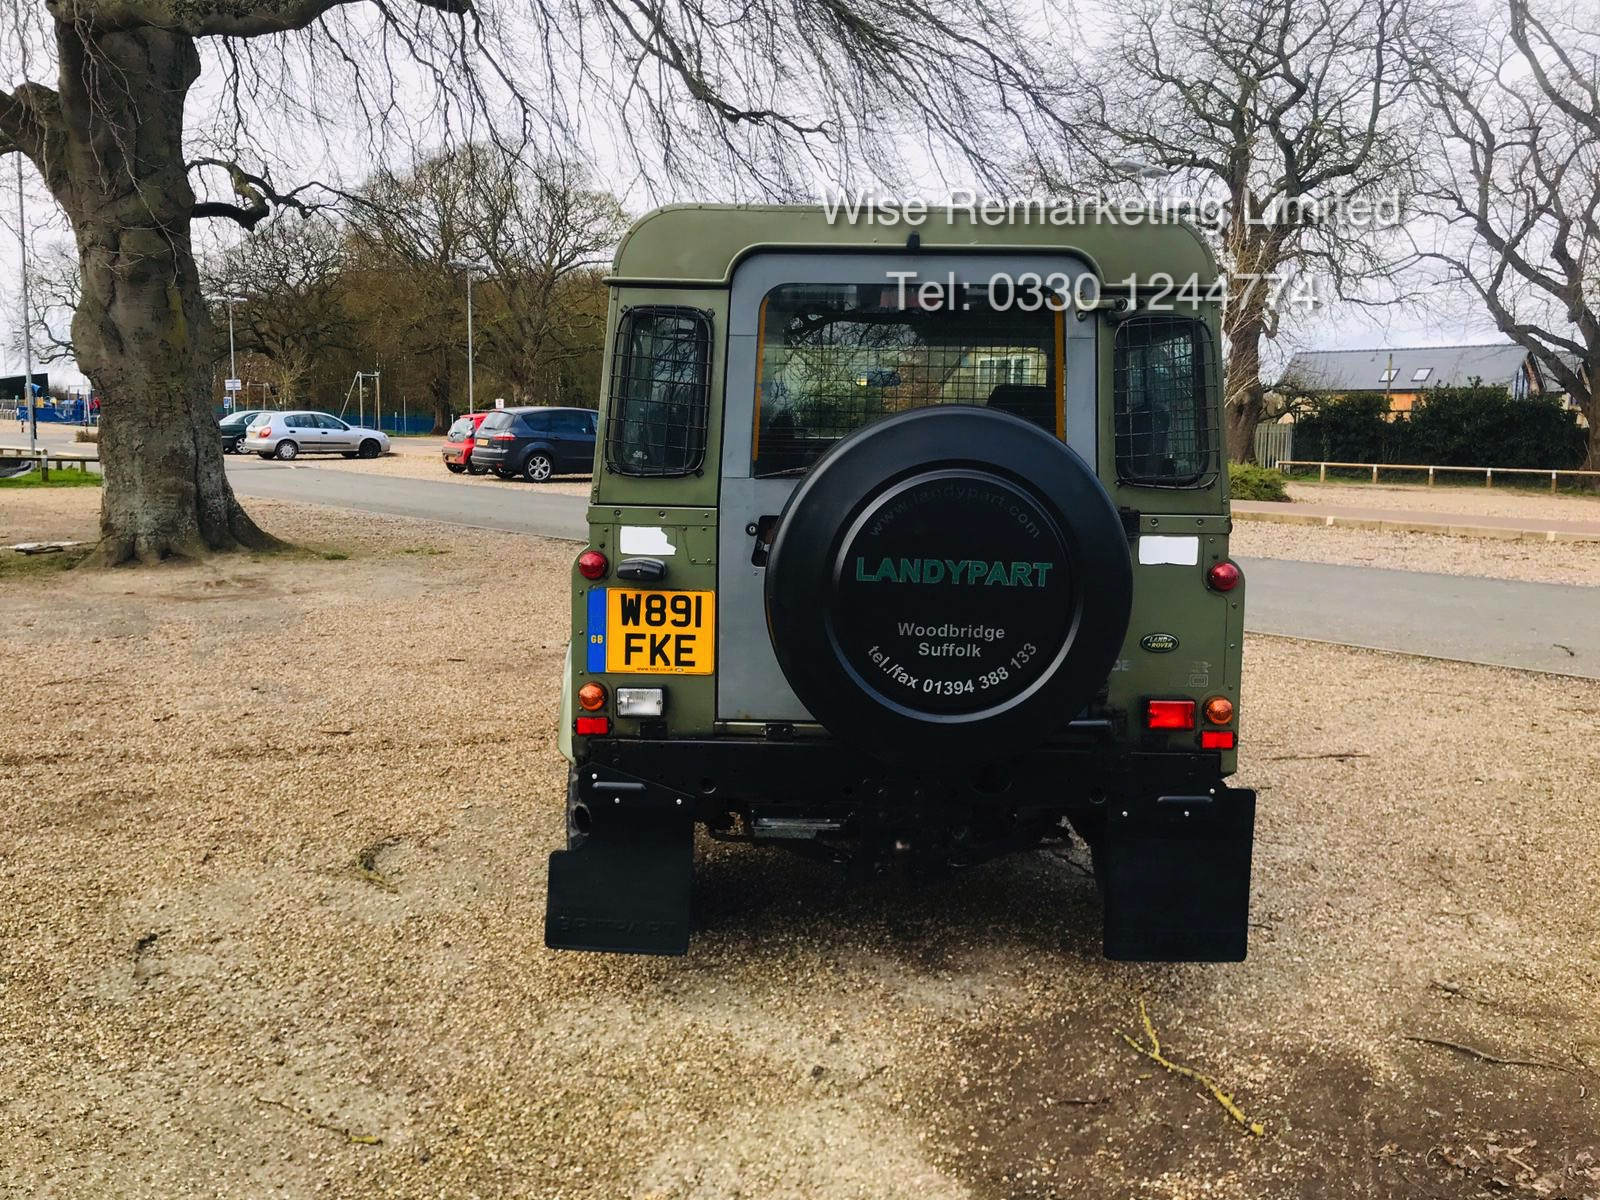 Land Rover Defender 90 County 2.5 TD5 - 2000 Year W Reg - 7 Seater - RARE - SAVE 20% NO VAT - Image 3 of 12